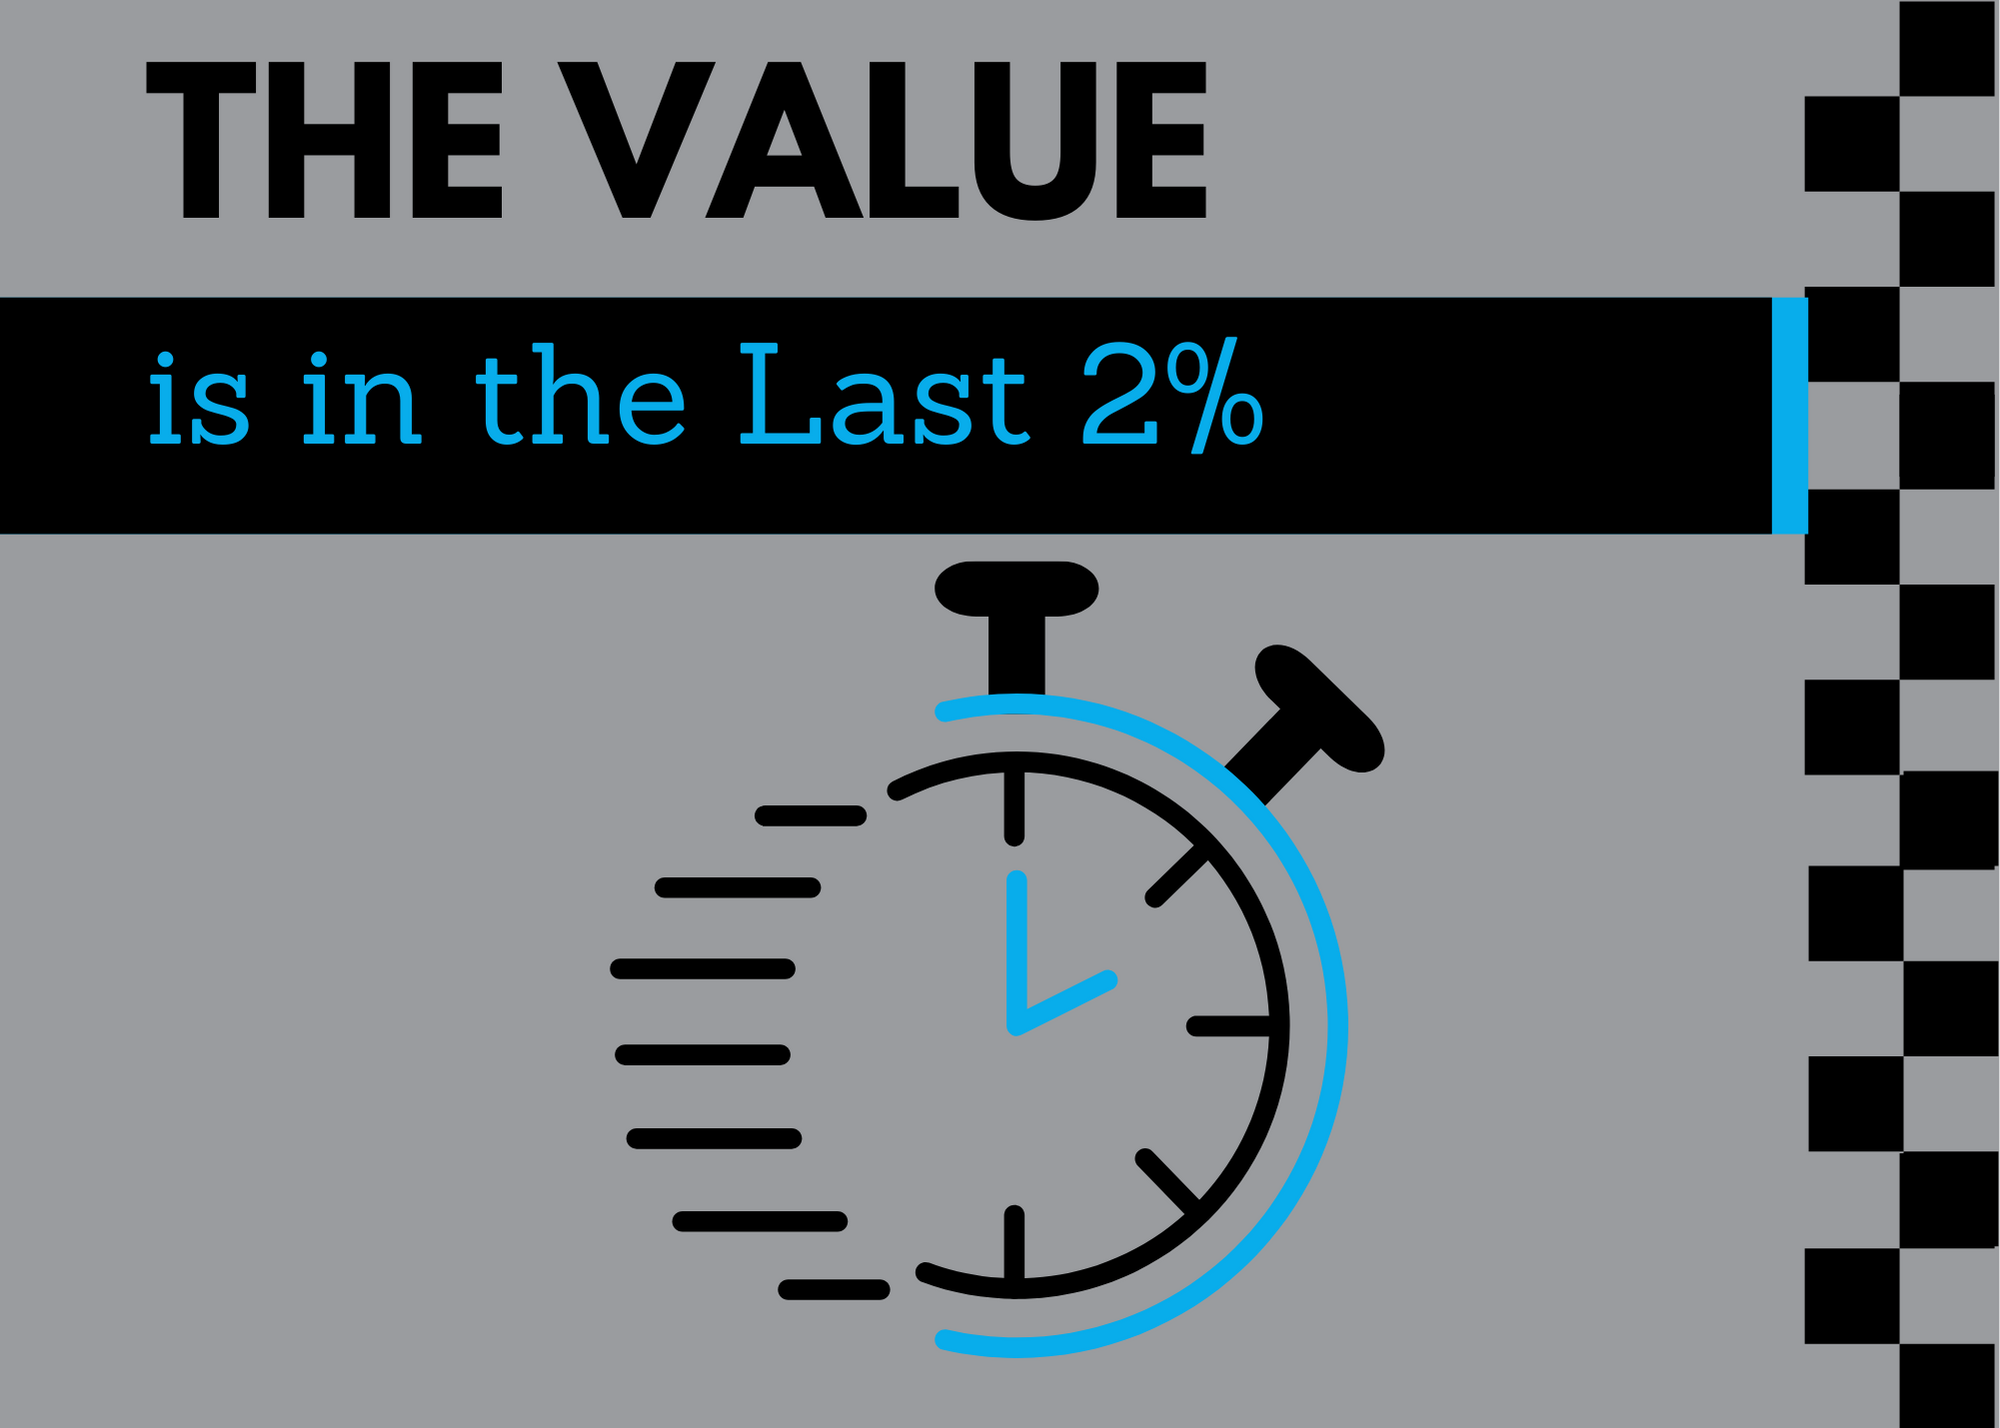 the value of commercial real estate professionals is in the last 2% of their workflow